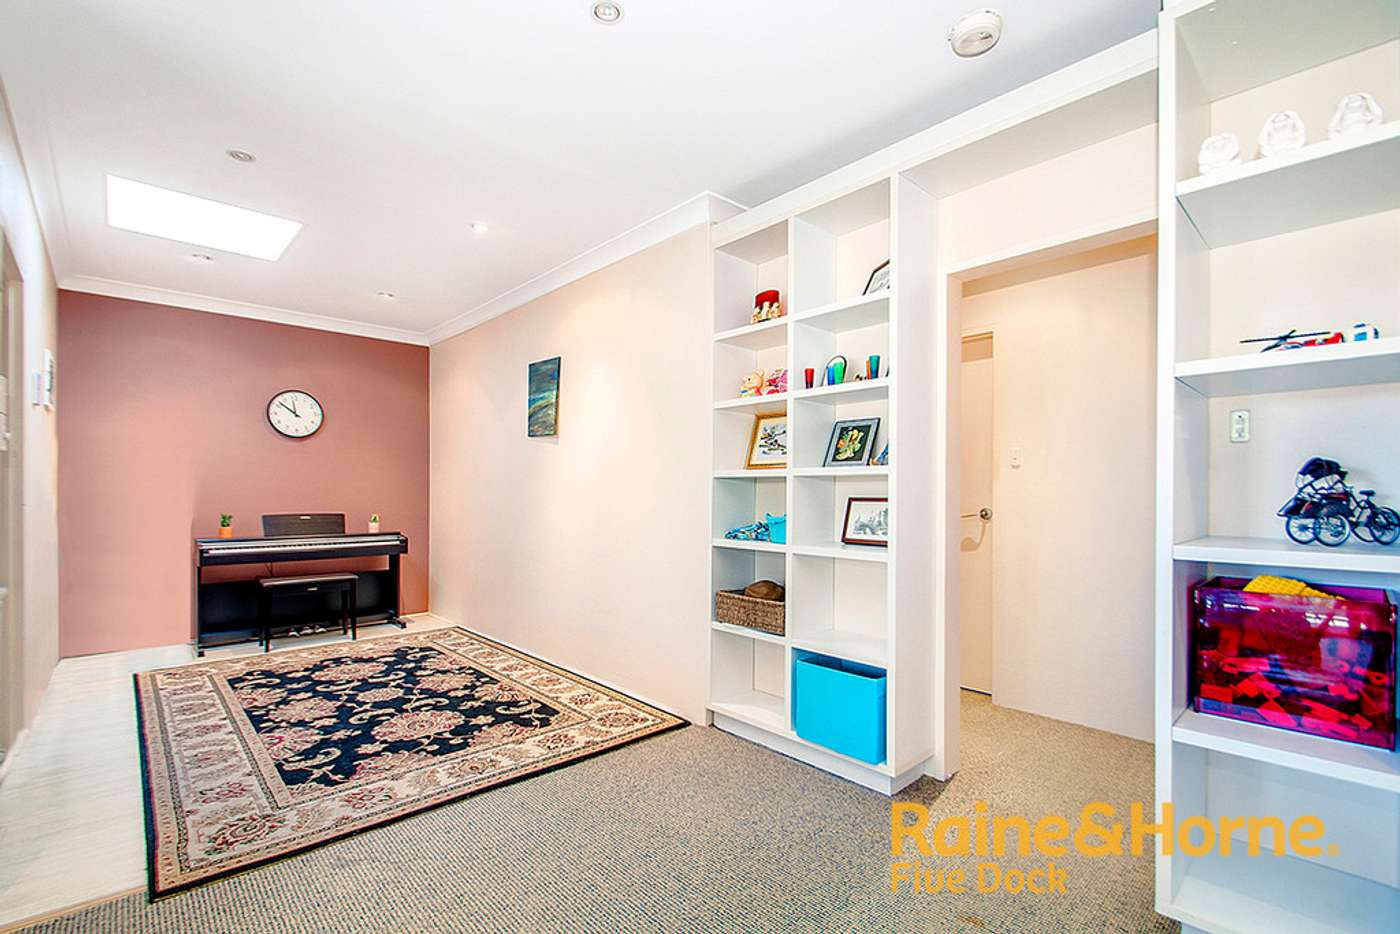 Seventh view of Homely apartment listing, 11/116 EDENHOLME ROAD, Wareemba NSW 2046